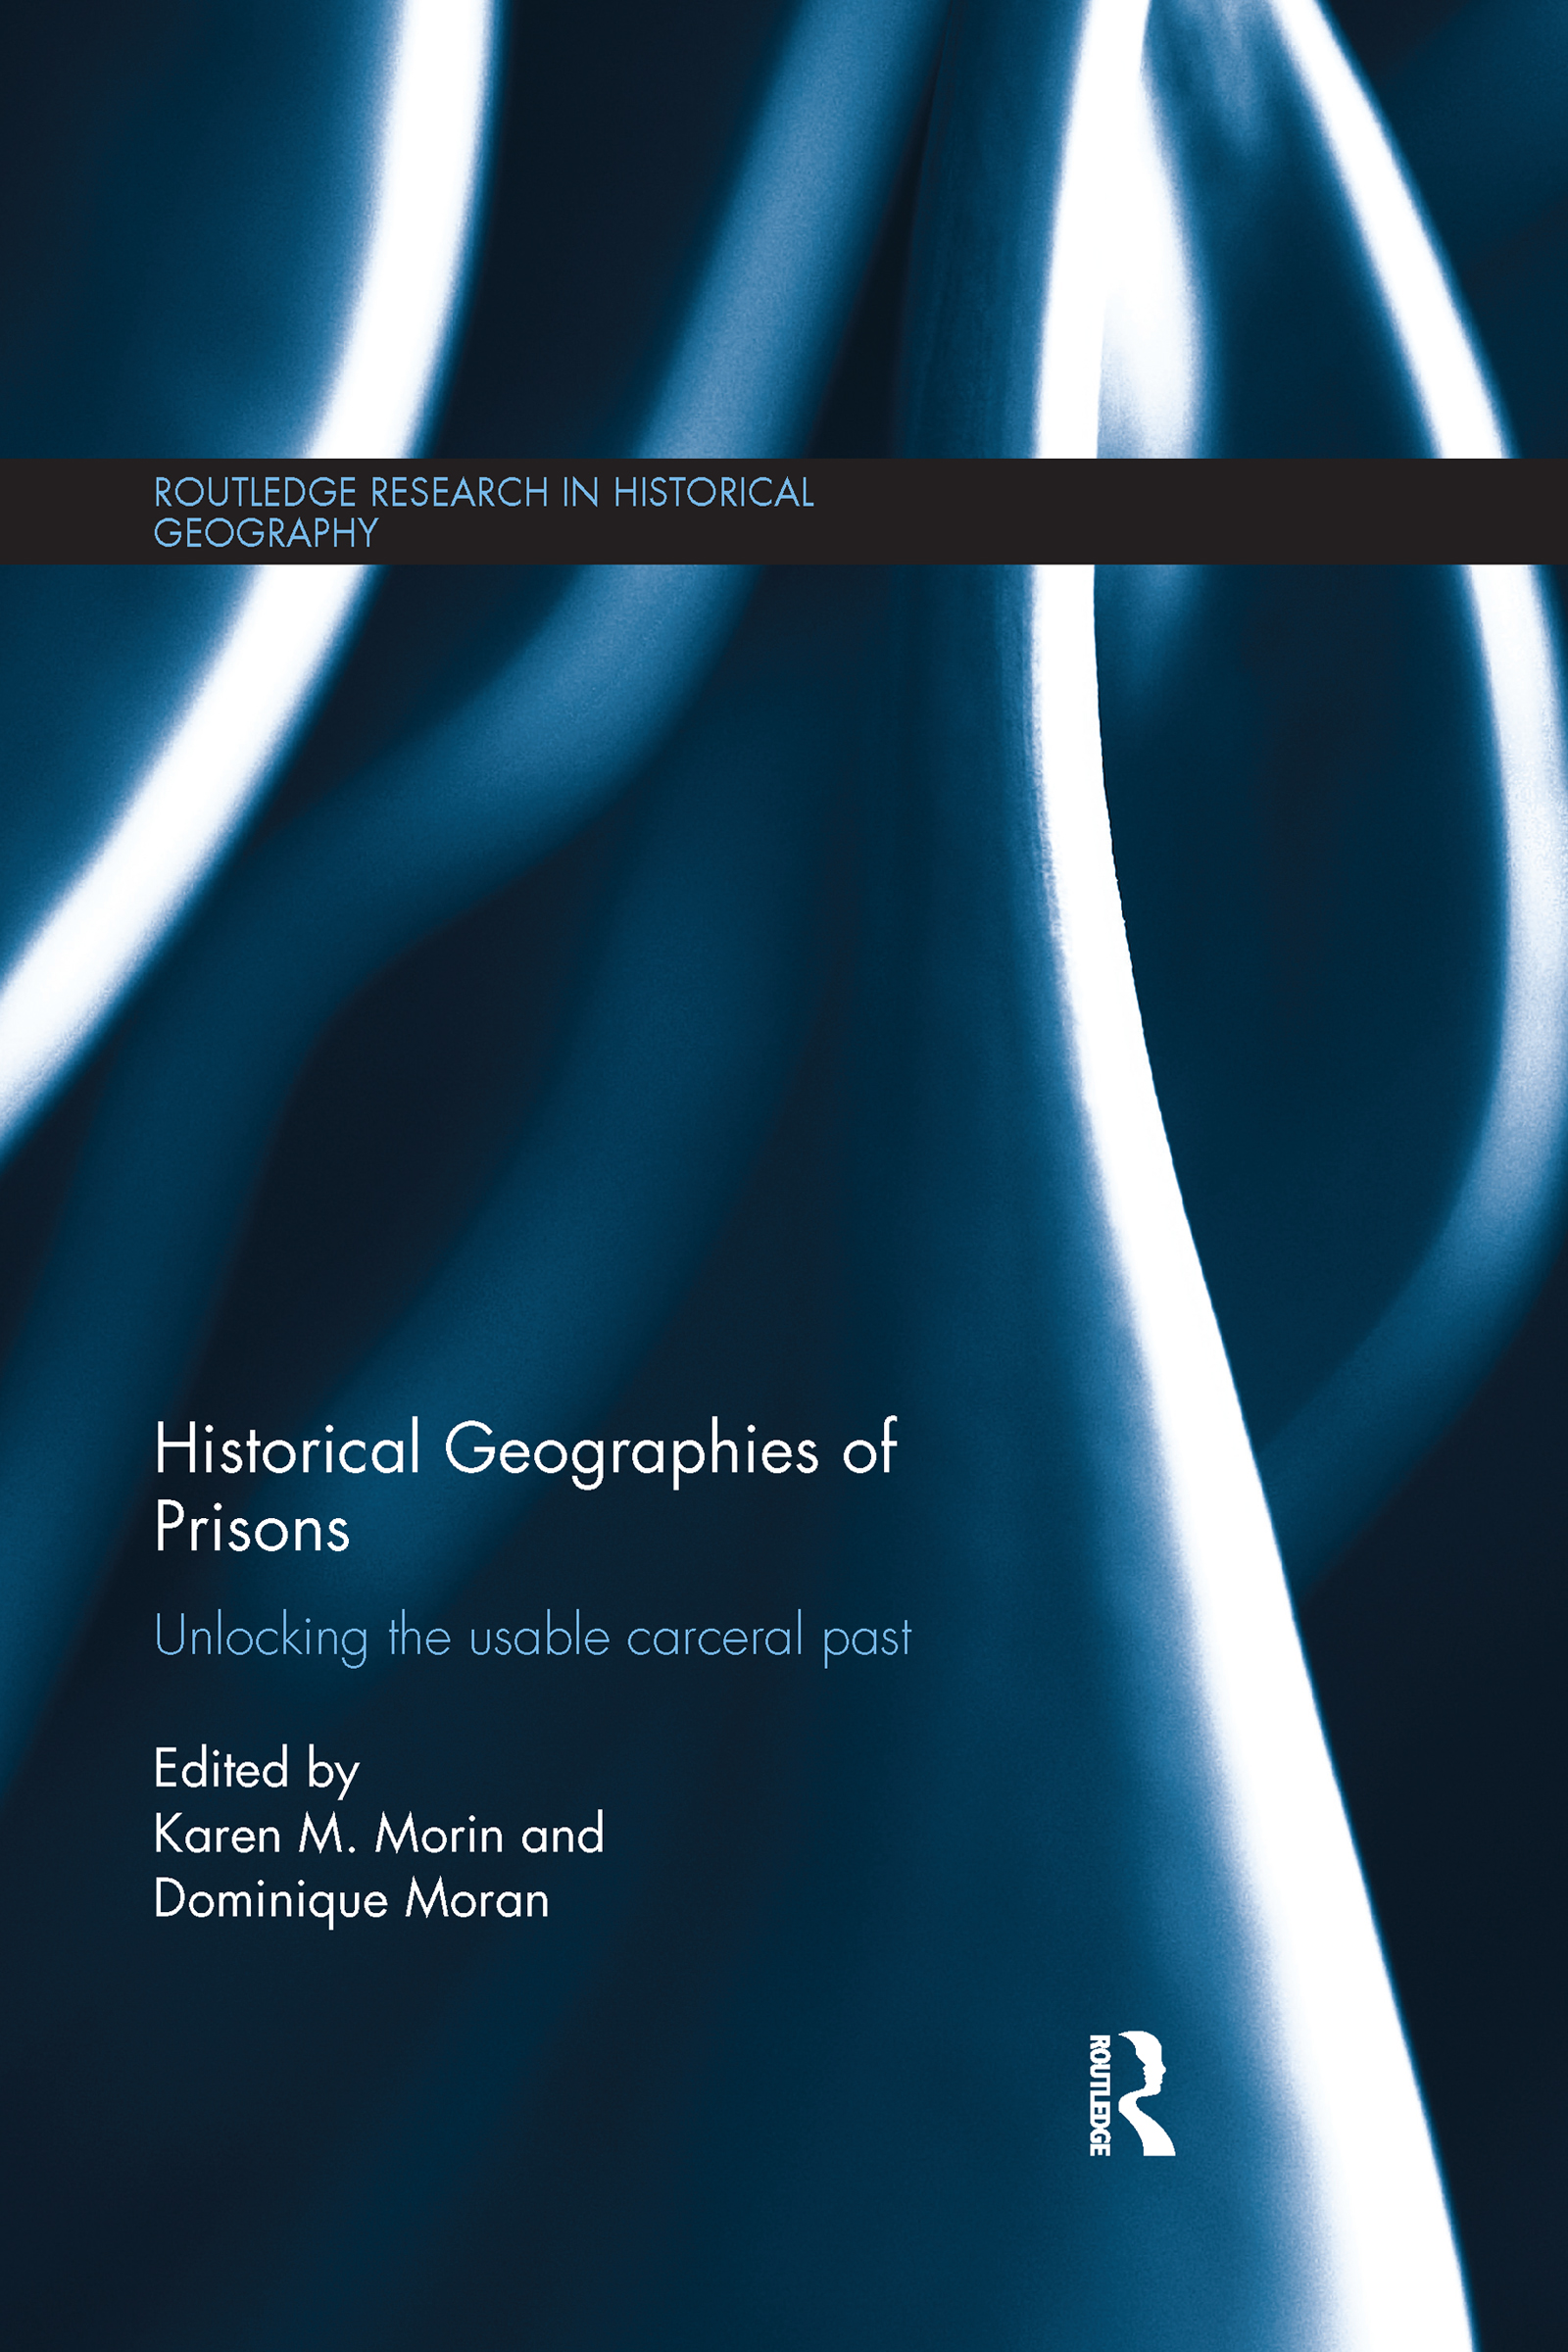 Historical Geographies of Prisons